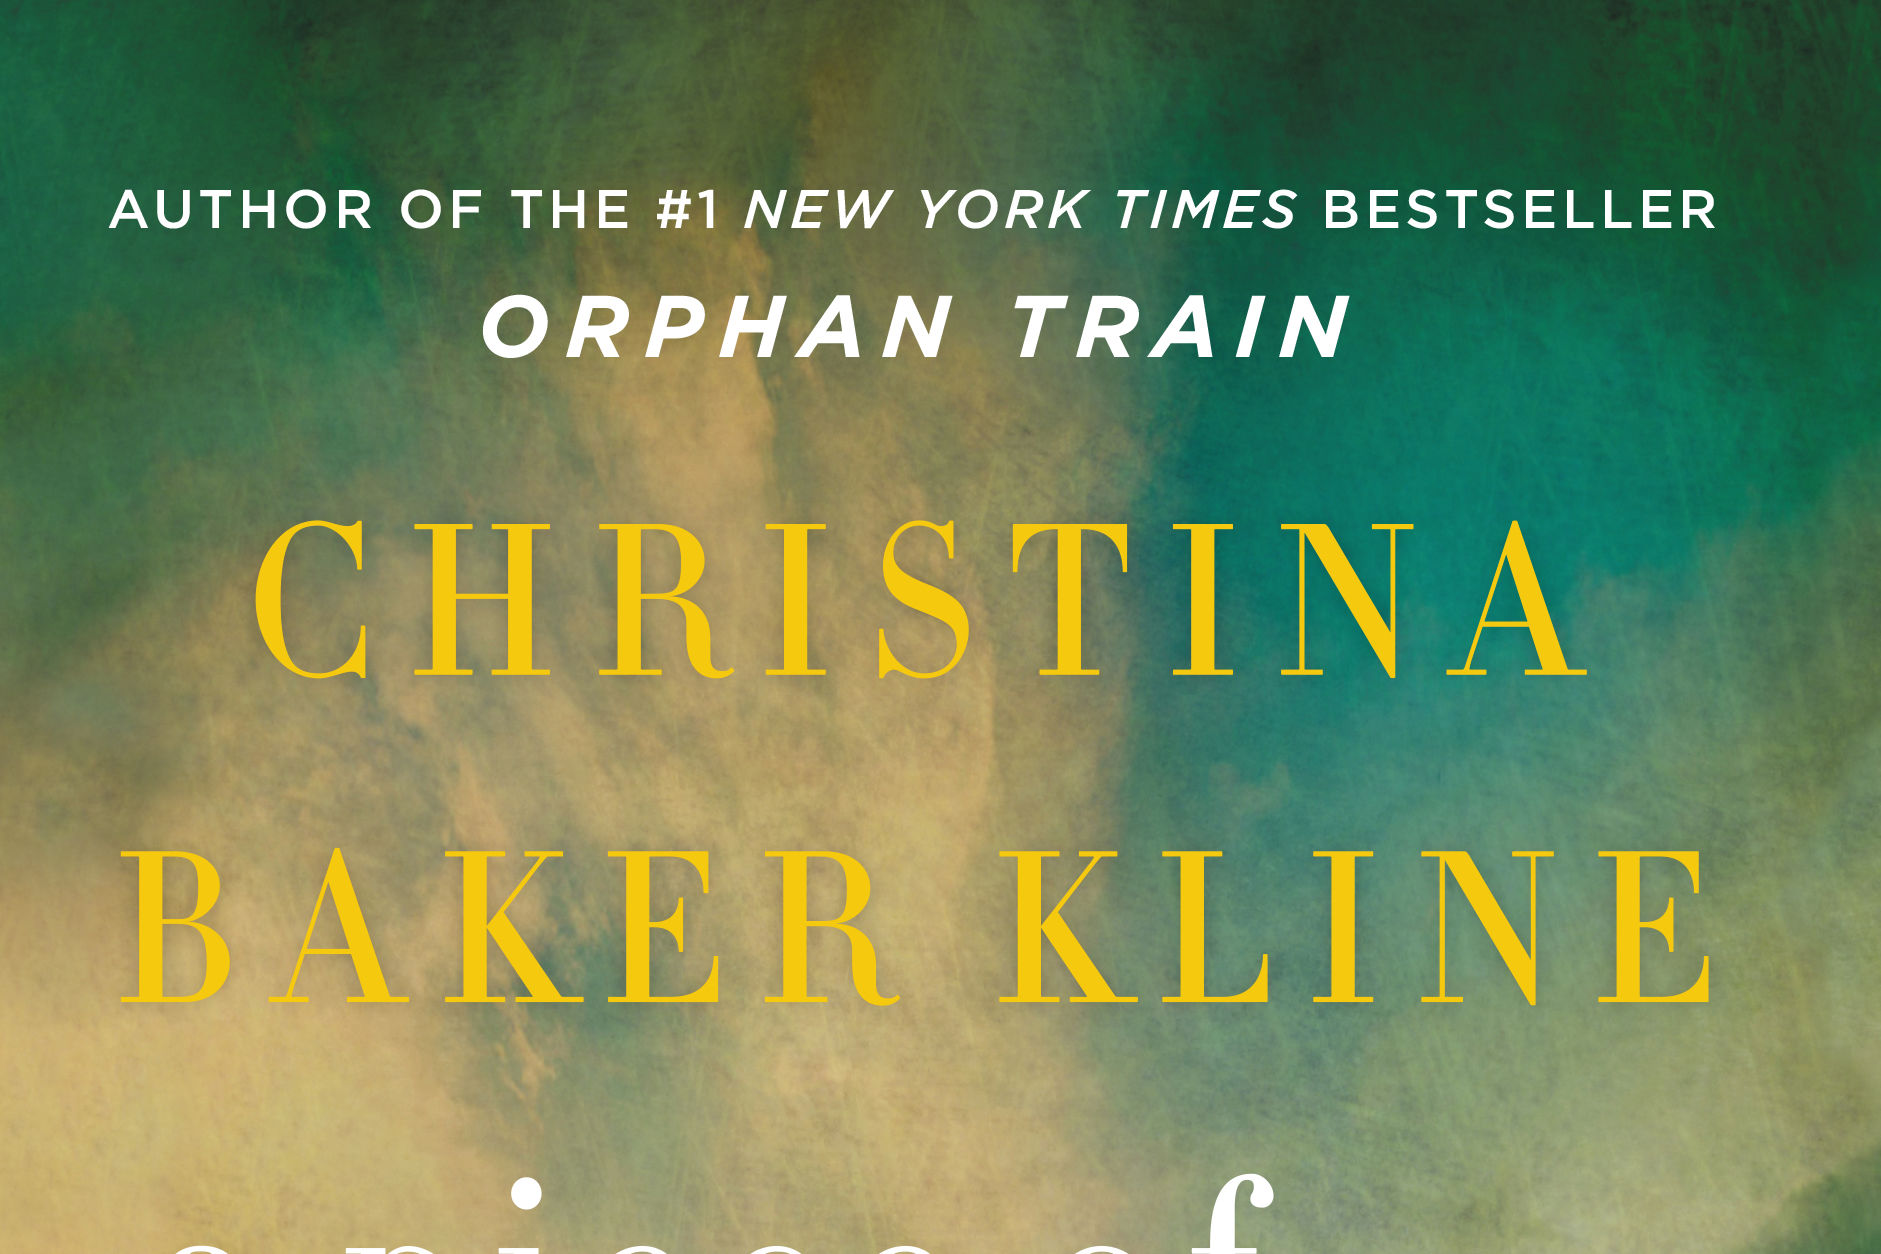 Christina baker kline book jacket olc4bc